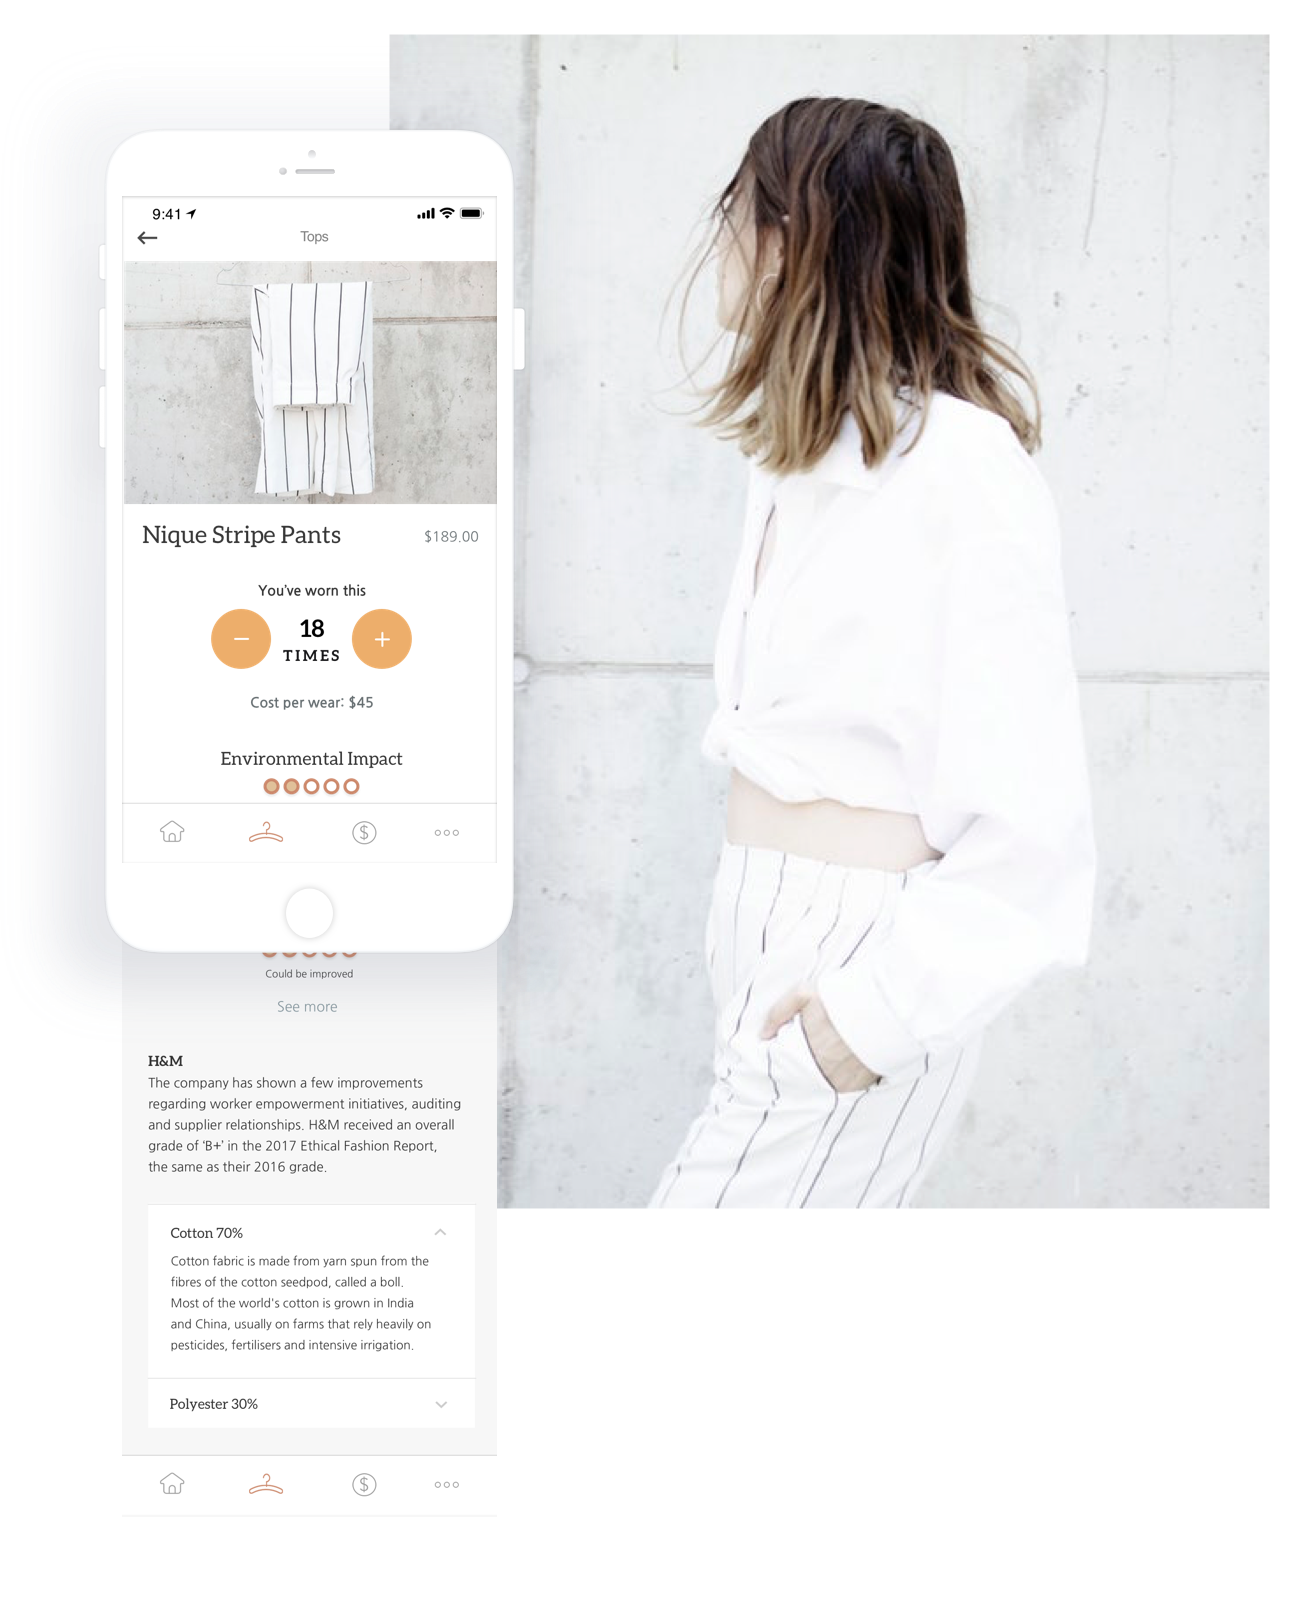 Learn about the clothes you own to help you make better decisions. - Log how many times you've worn an item to calculate your cost per wear. Learn about the environmental impact of your clothes based on public brand information and material and fabric insights.User goal: Buy more quality clothing (through education of material and fabric), declutter and simplify (knowing cost per wear lets you review what items you are not wearing)